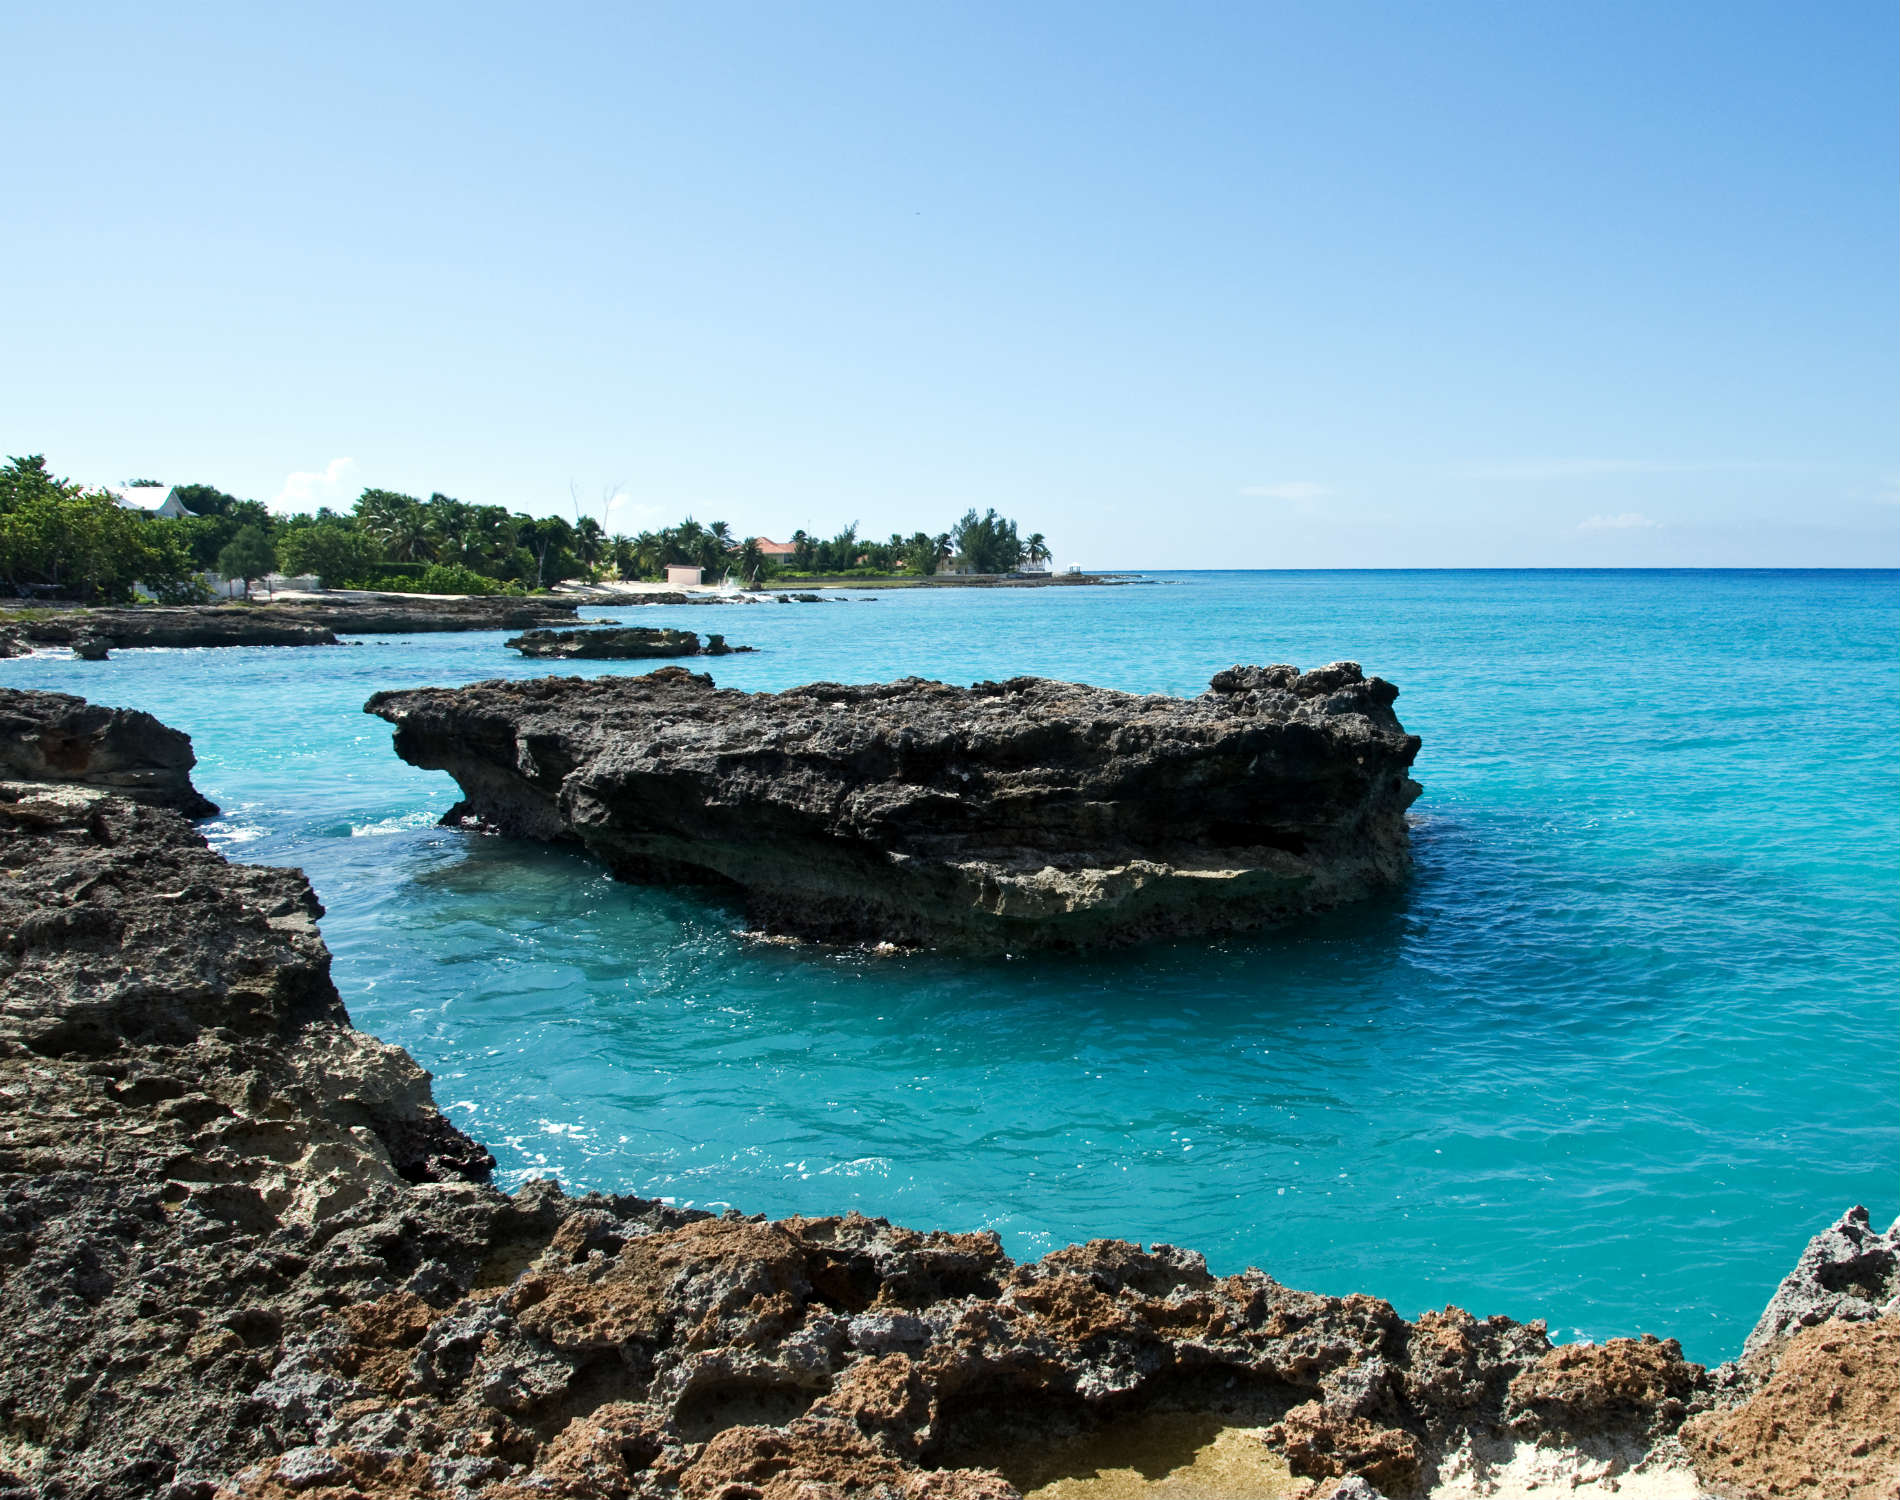 The Best Time to Visit the Cayman Islands